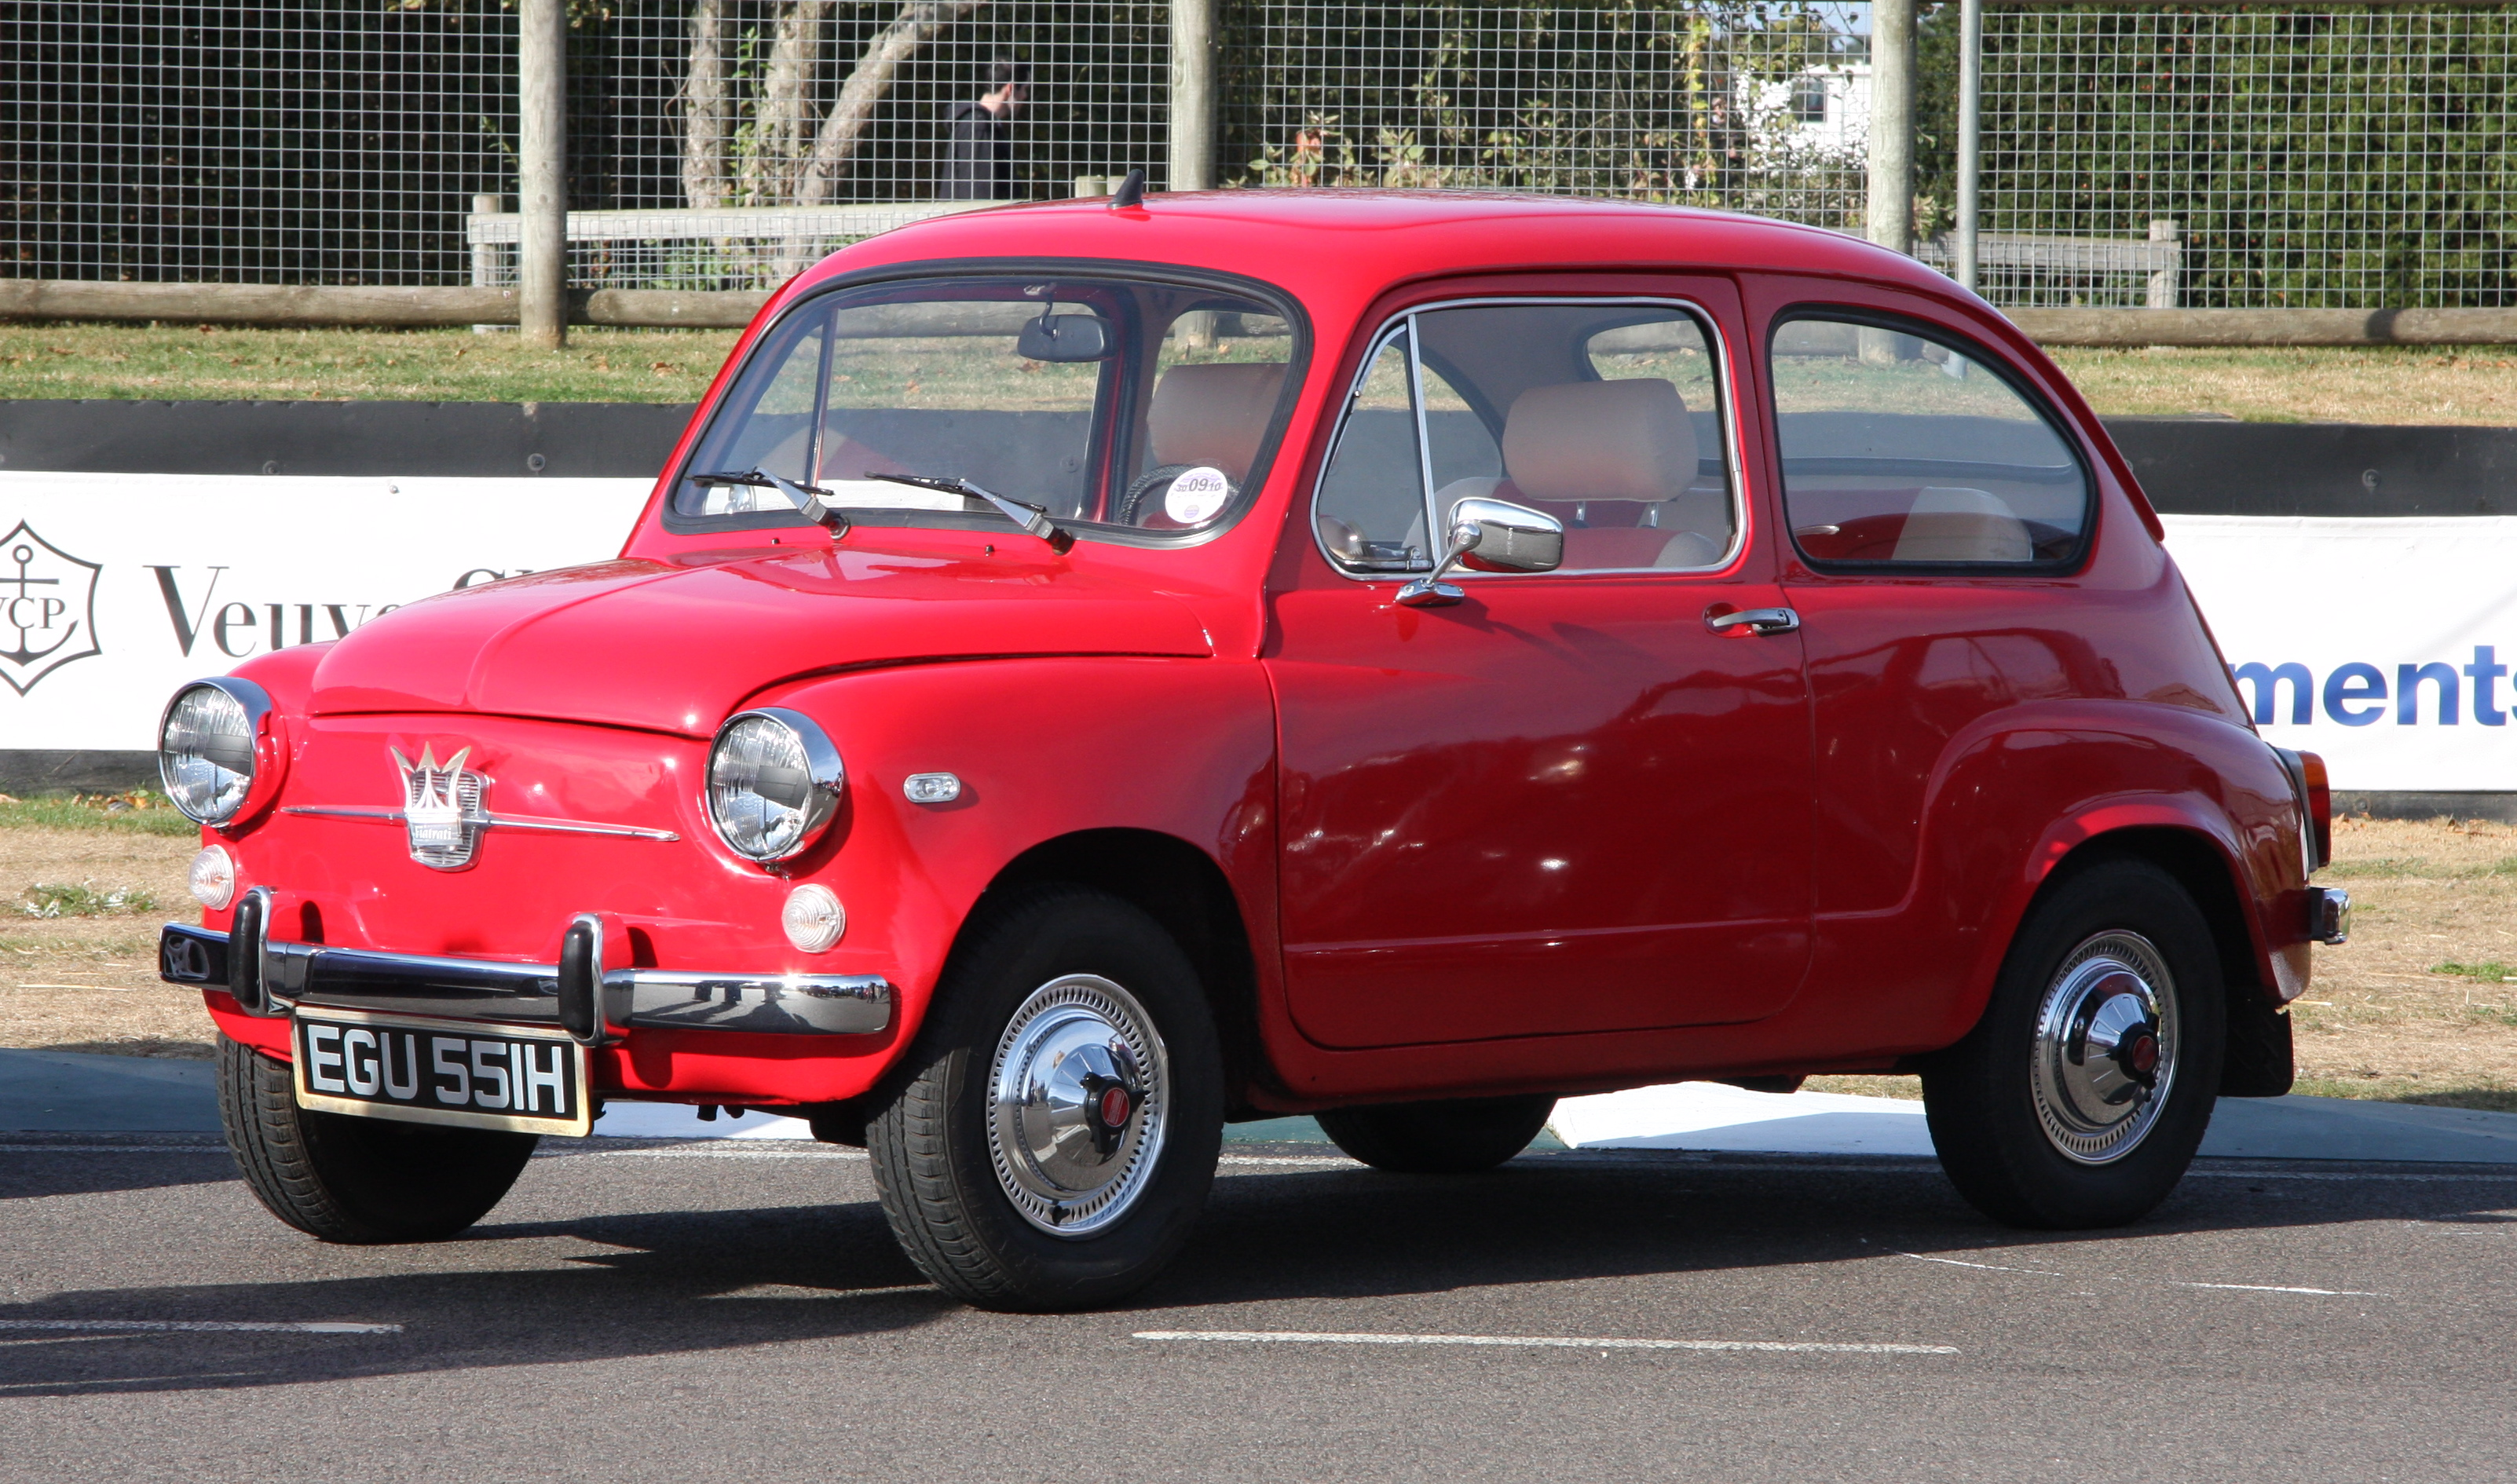 Fiat 600d Amazing Photo on OpenISO.ORG - Collection of Cars. Fiat ...